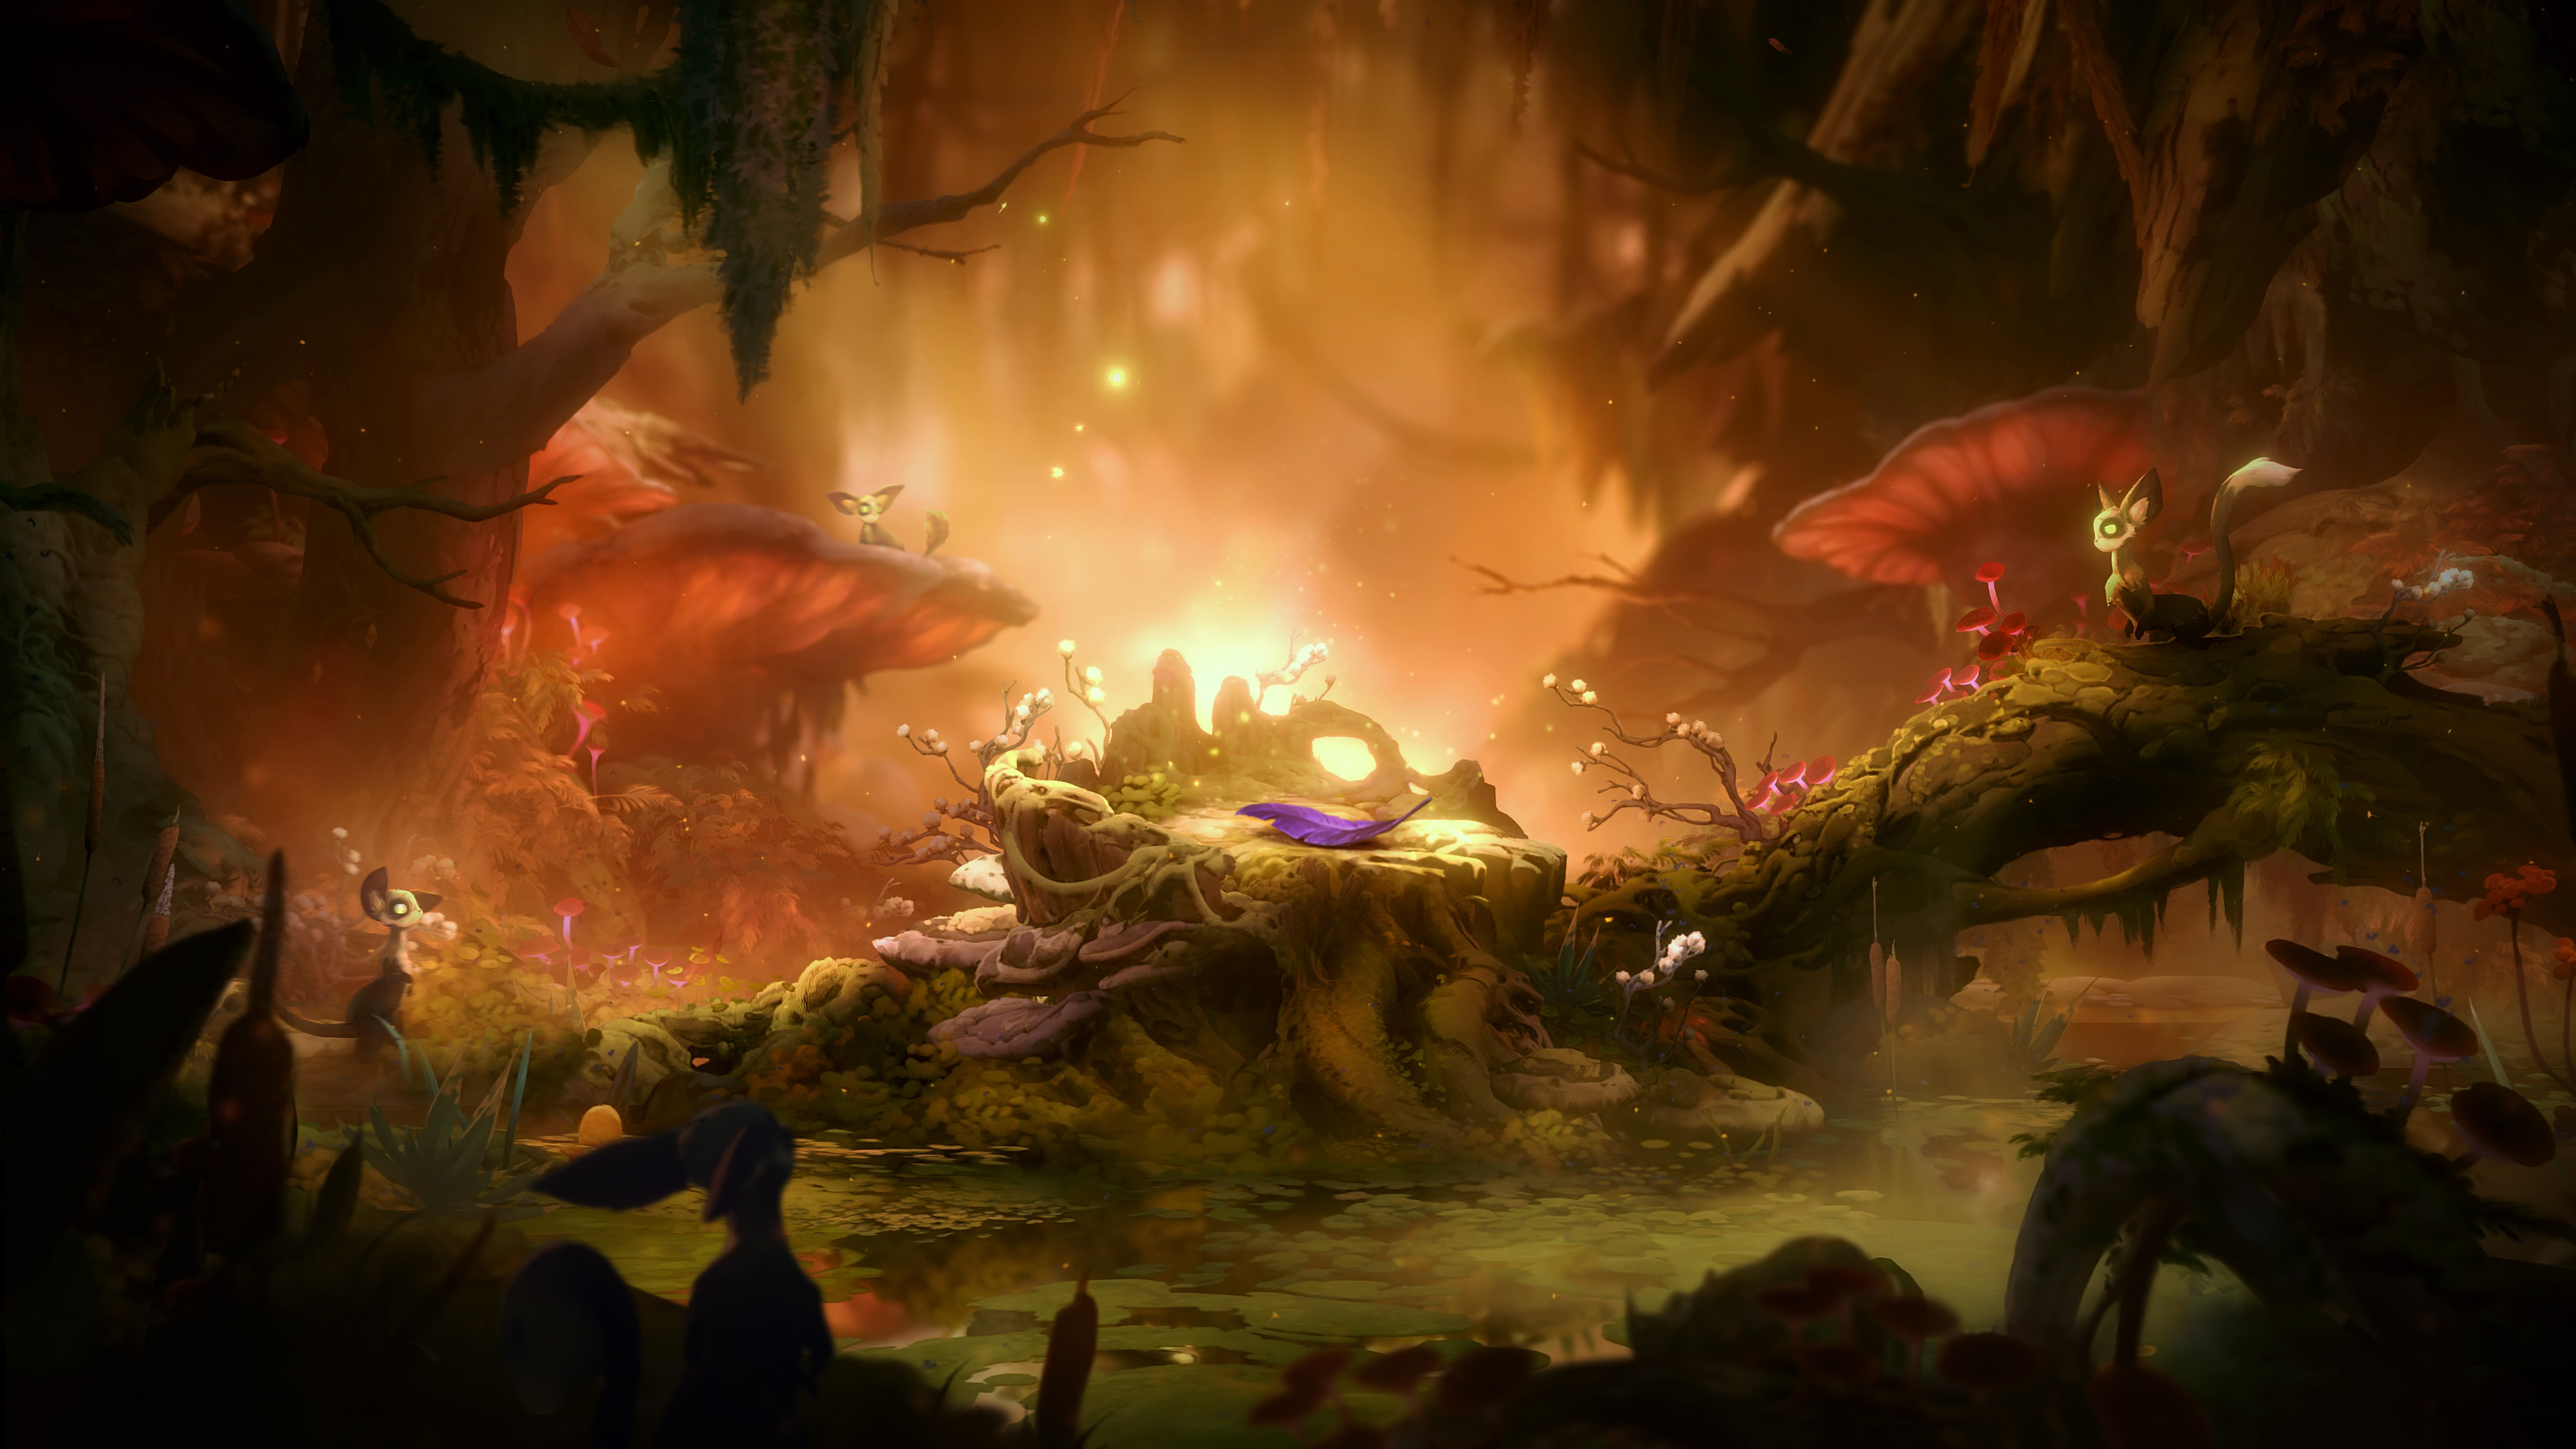 ori and the will of the wisps 5k 1537692022 - Ori And The Will Of The Wisps 5k - xbox games wallpapers, pc games wallpapers, ori and the will of the wisps wallpapers, hd-wallpapers, games wallpapers, 5k wallpapers, 4k-wallpapers, 2018 games wallpapers